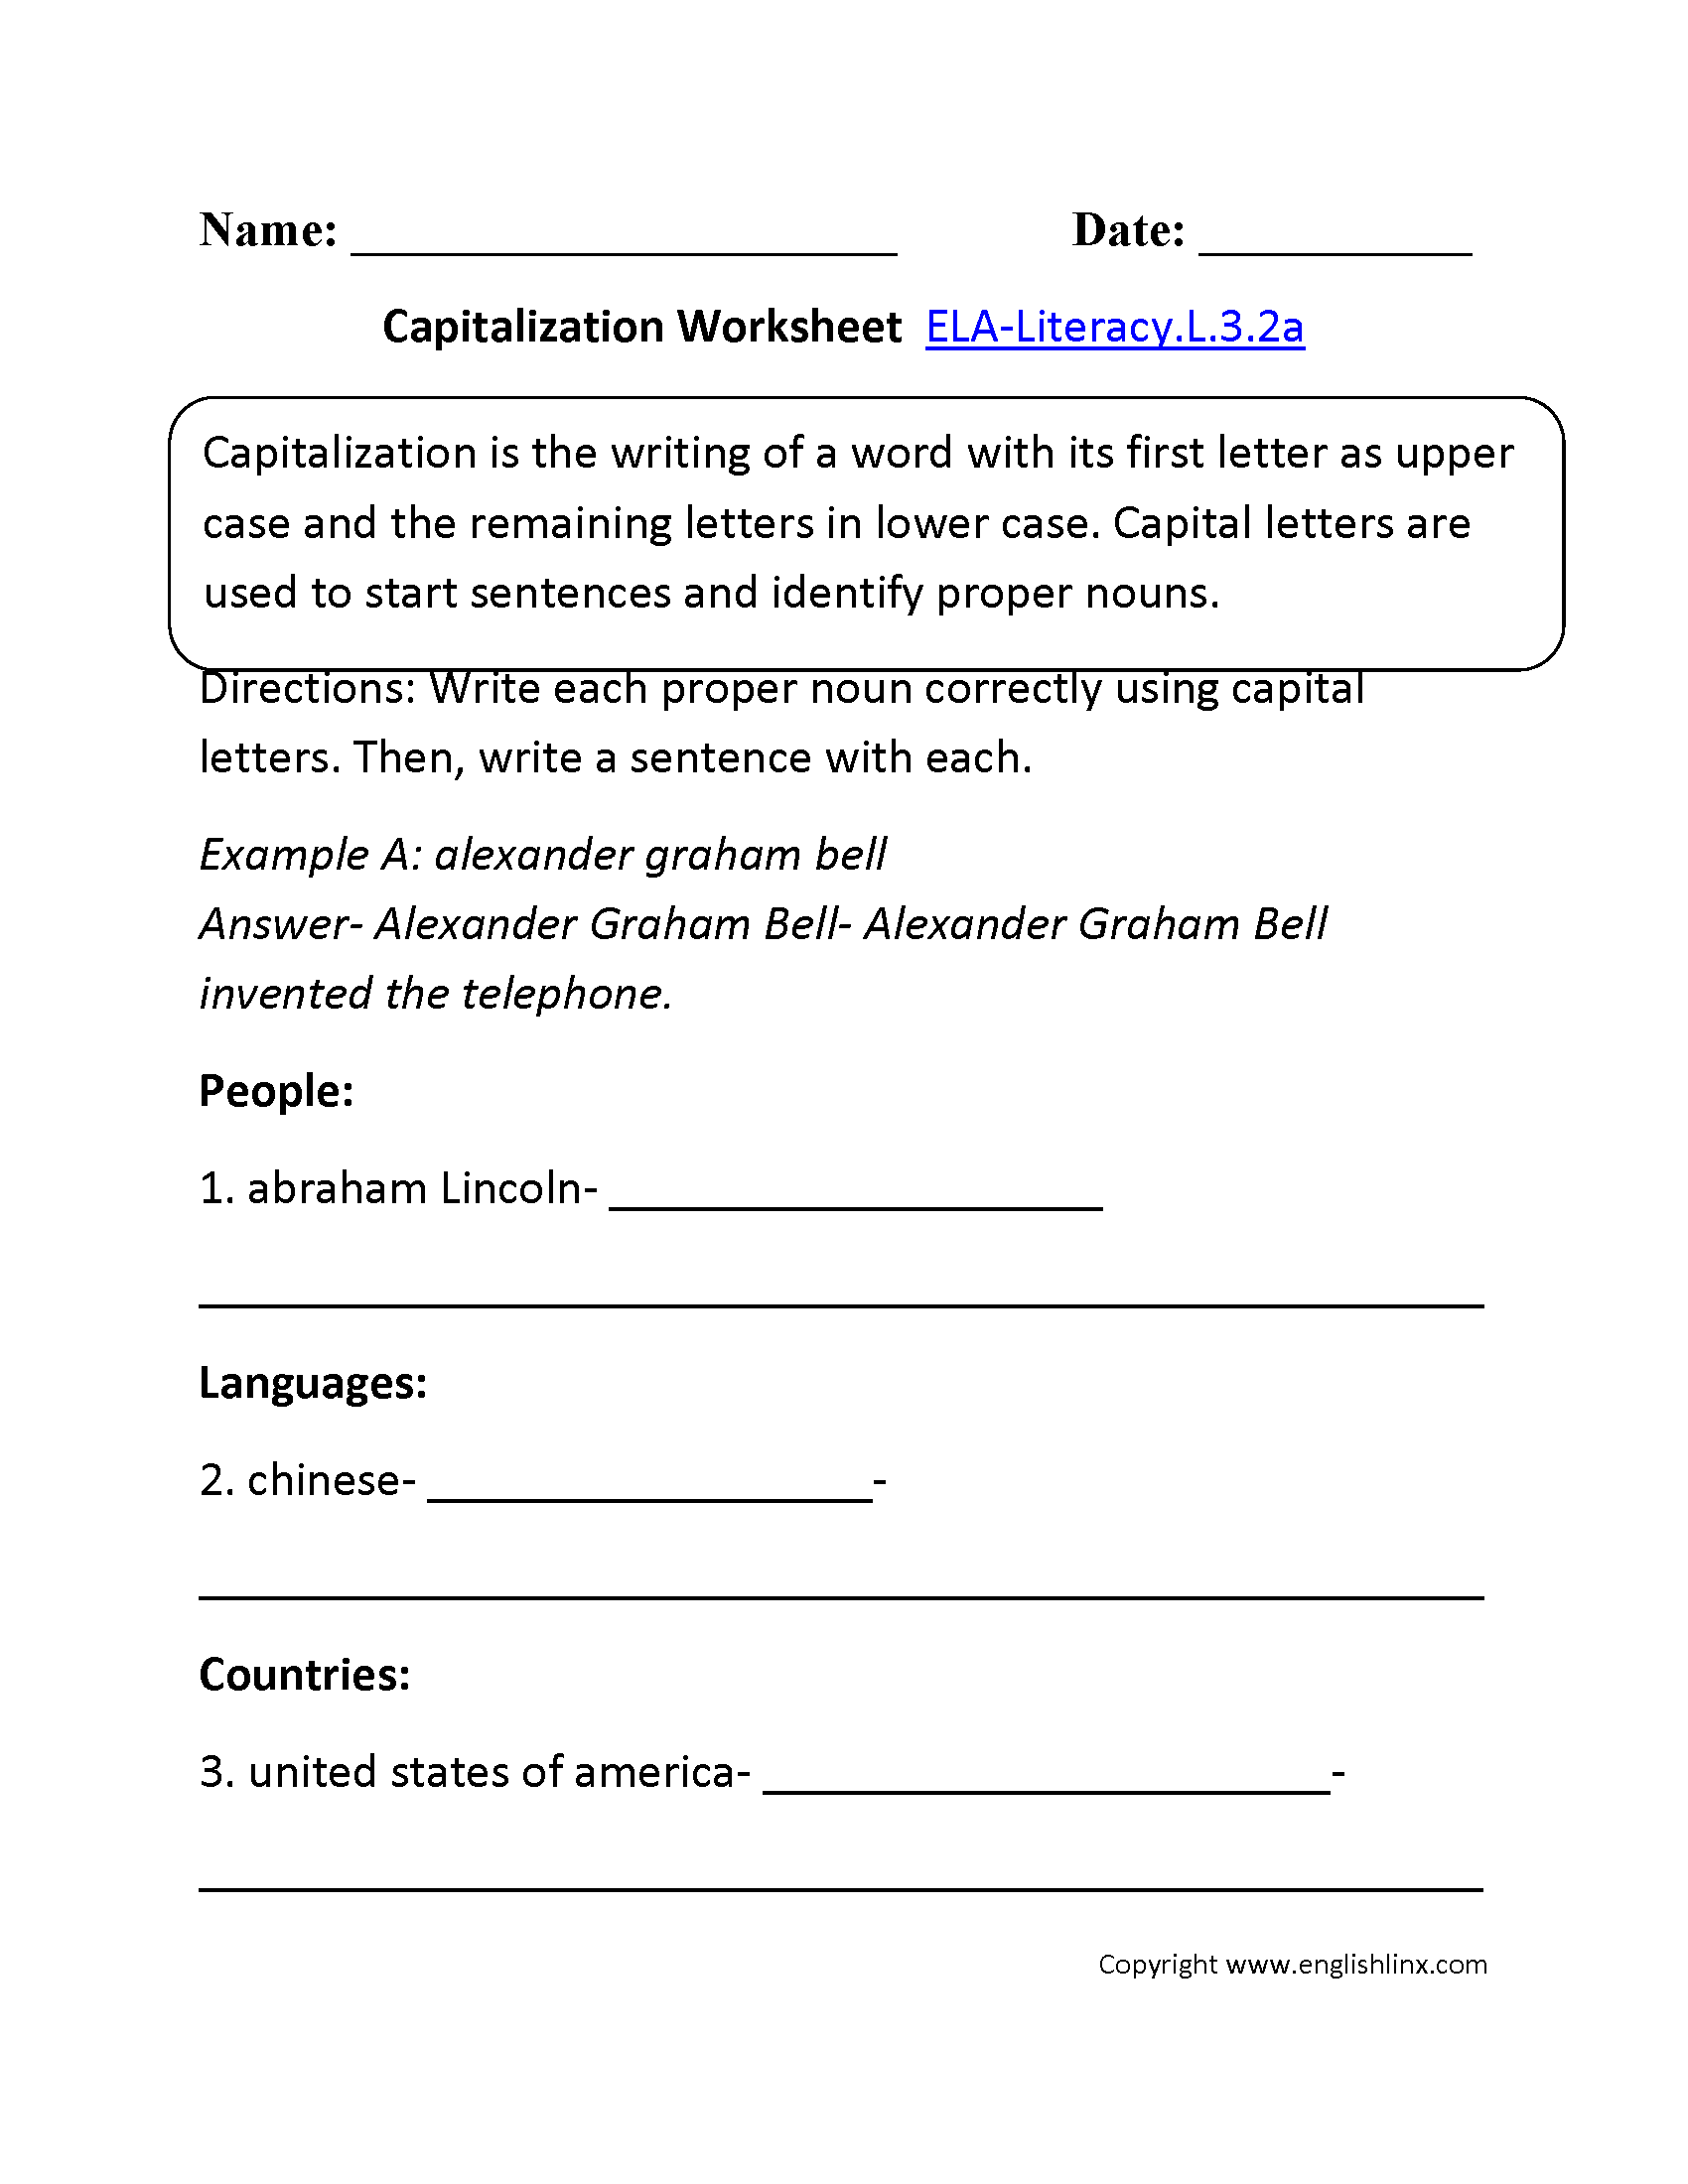 Capitalization Worksheet 1 ELA-Literacy.L.3.2a Language Worksheet